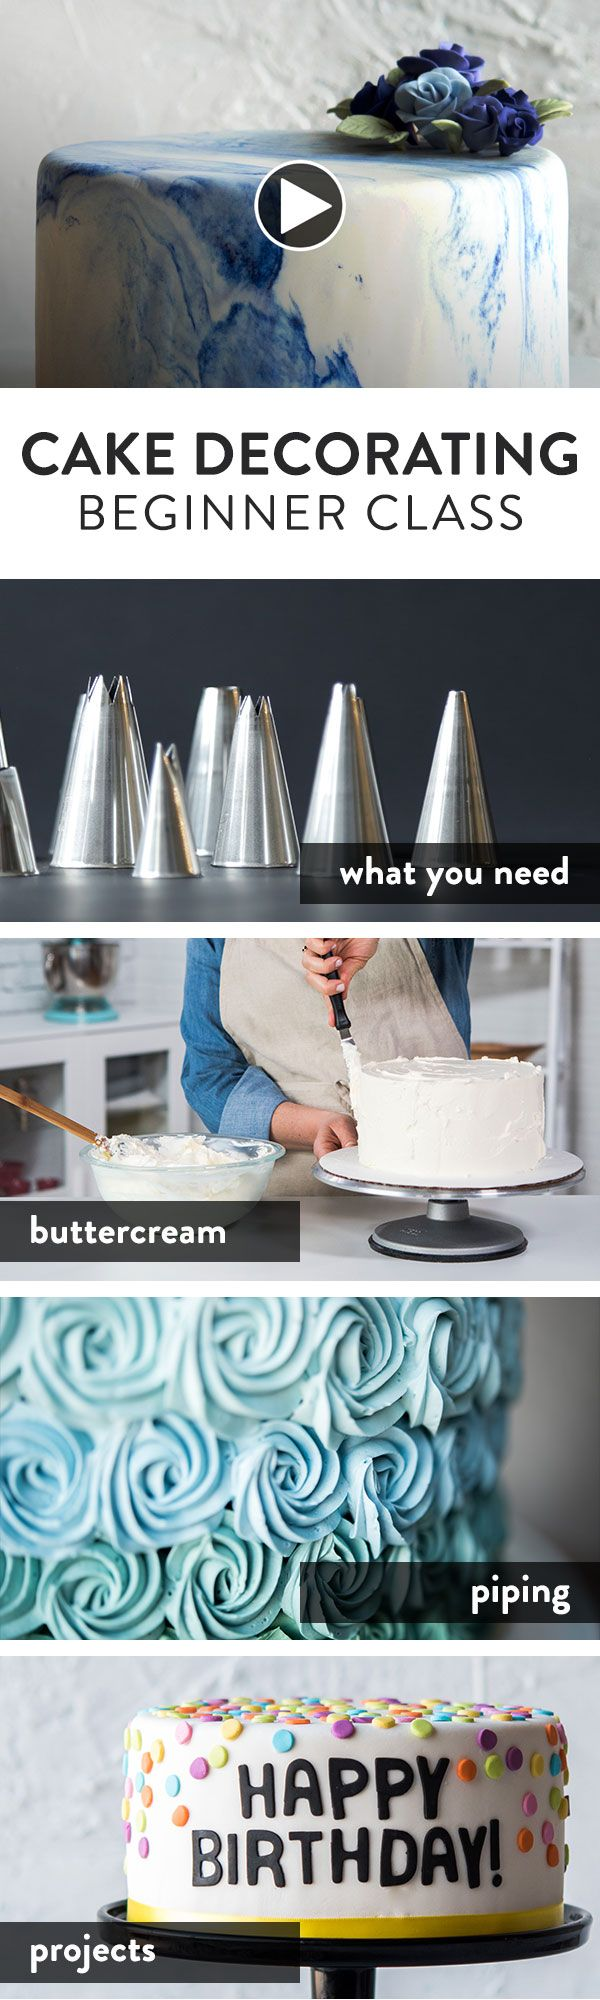 Everything you need to get started in beginner cake decorating.